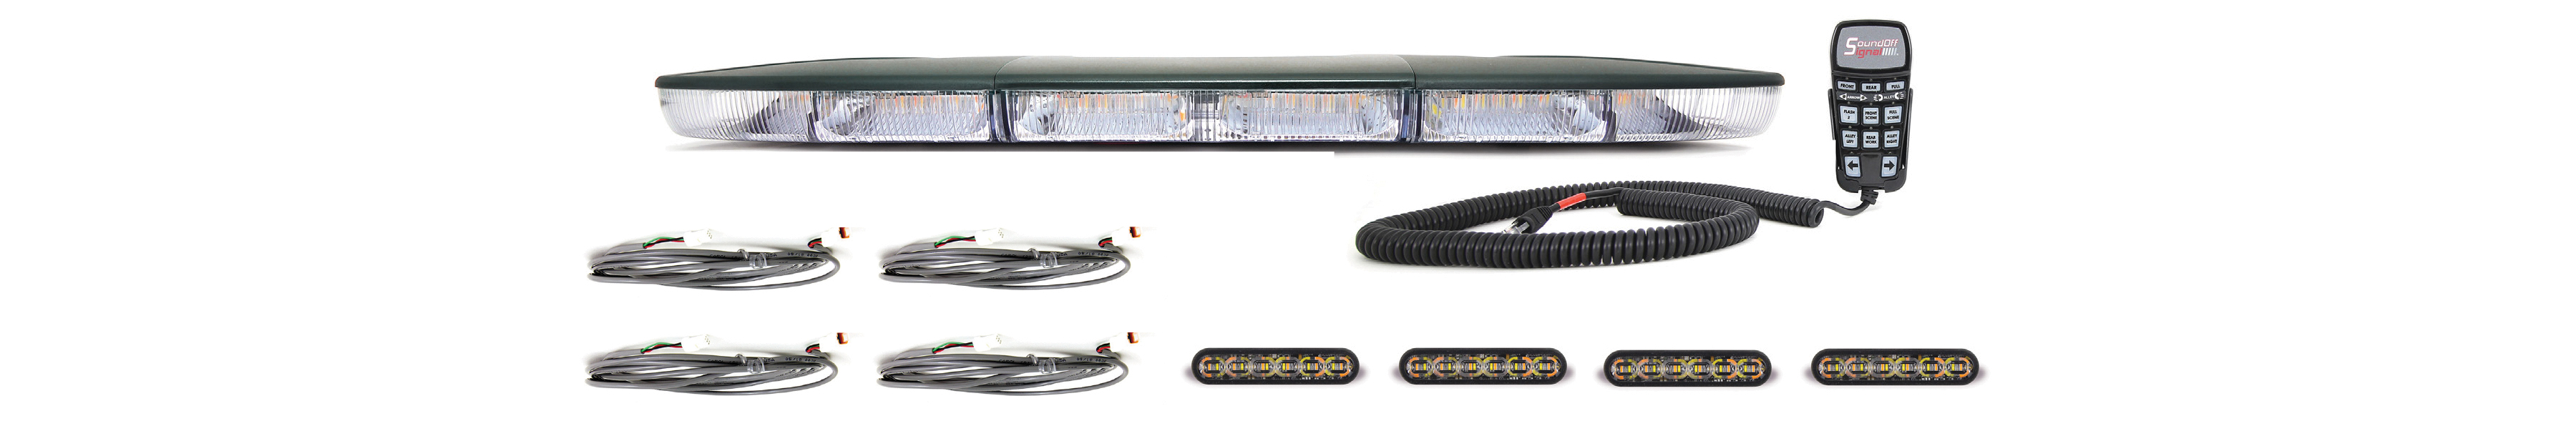 nROADS Fleet Connect-n-Go System Product Image